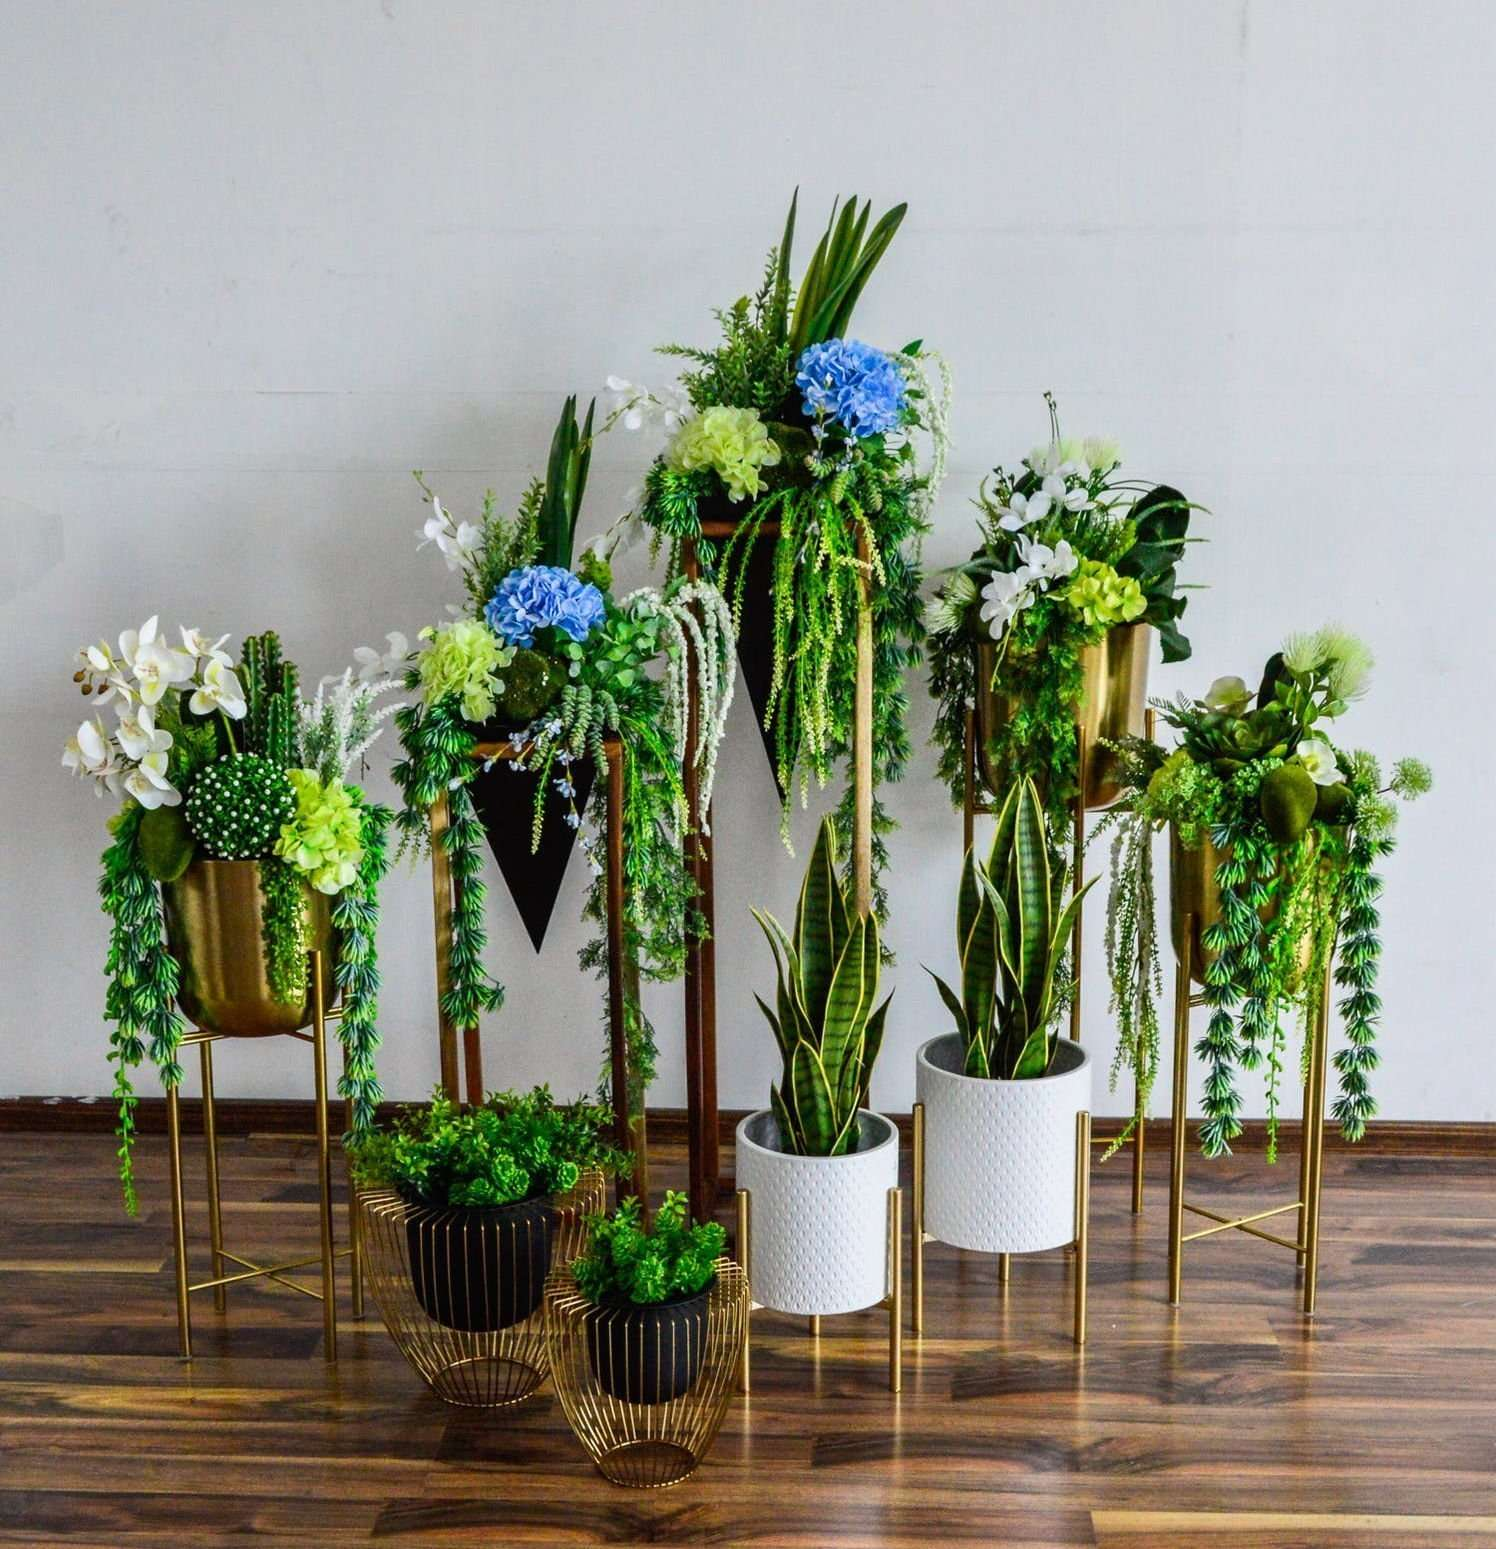 Blend your artificial plants and flowers with real ones to create a beautiful showpiece